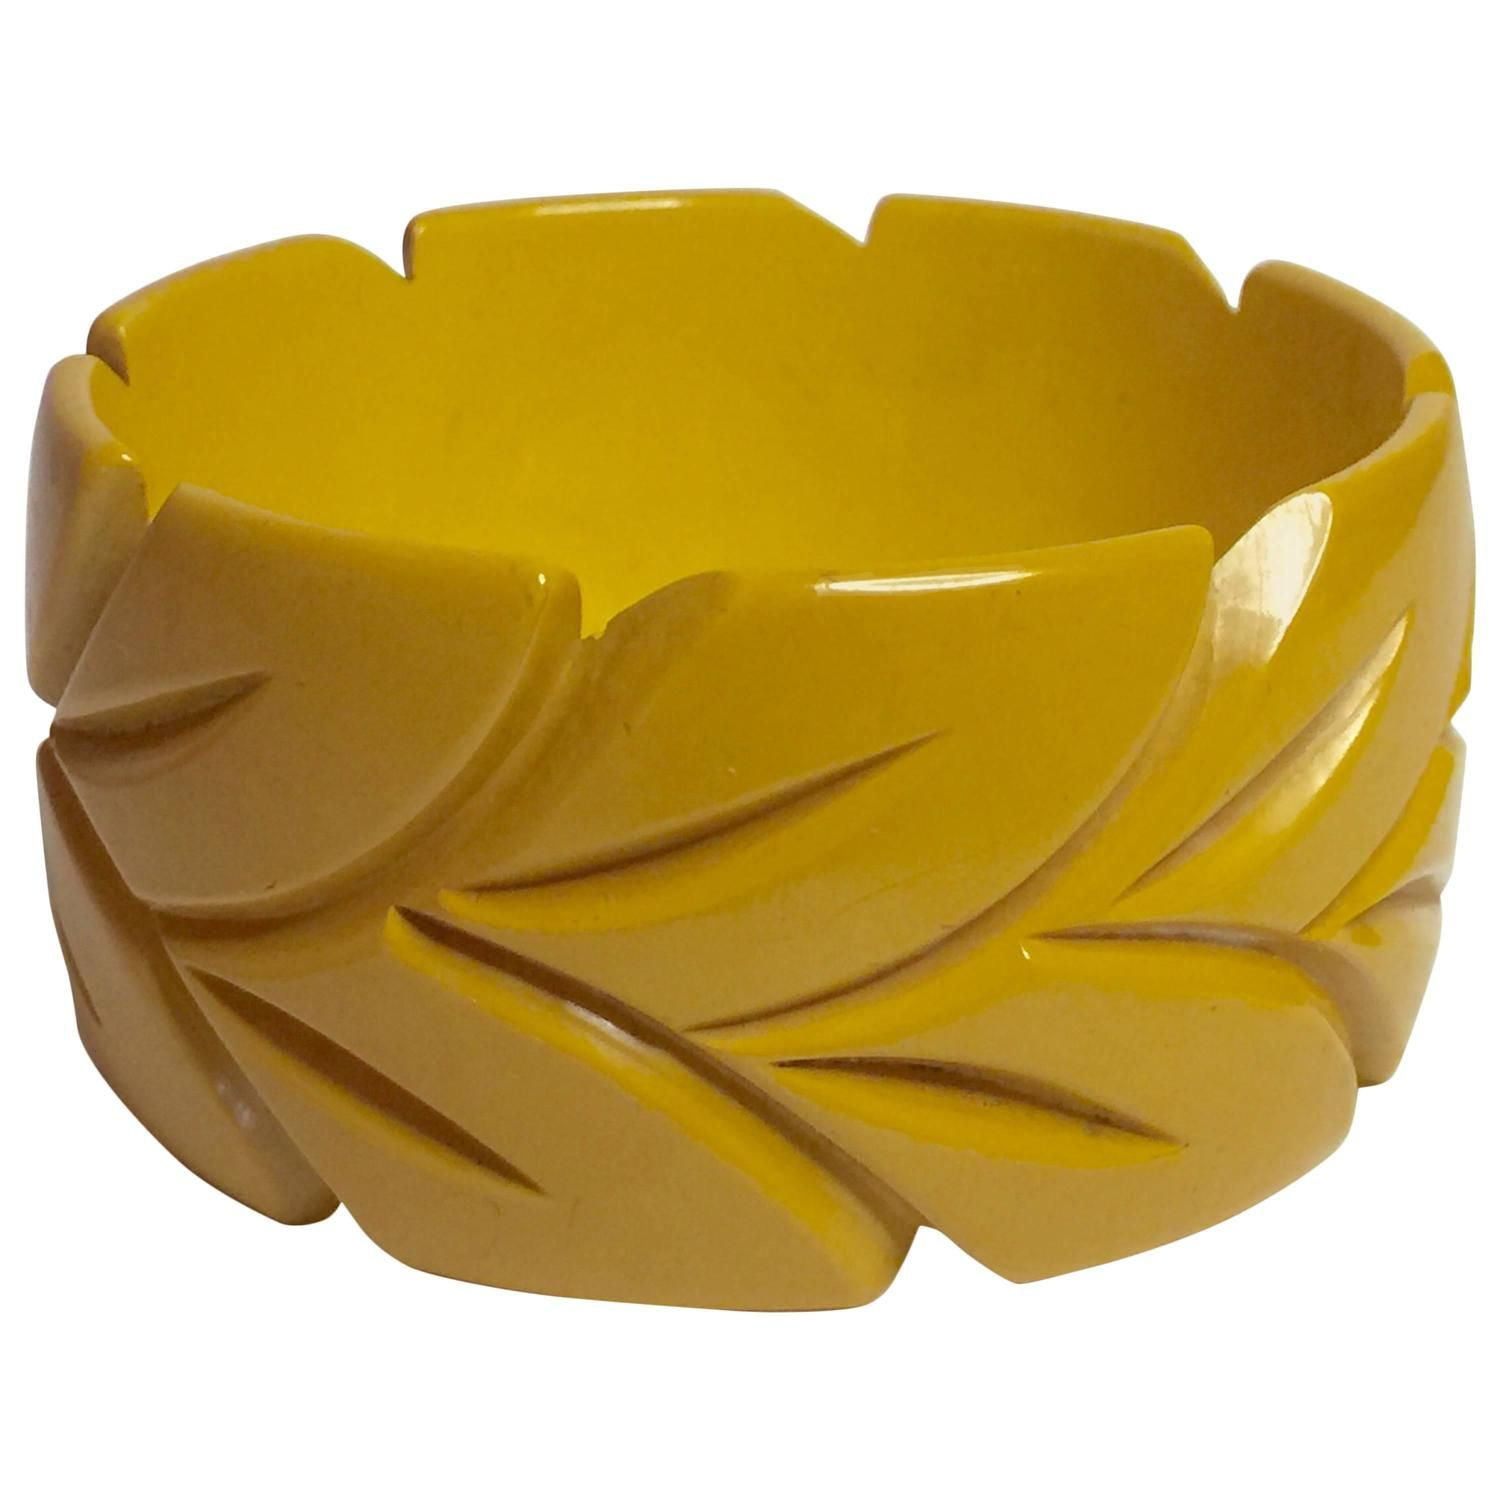 1930's Cream Bakelite Carved Bangle Bracelet Stylized Leaf | From a unique collection of vintage bangles at https://www.1stdibs.com/jewelry/bracelets/bangles/